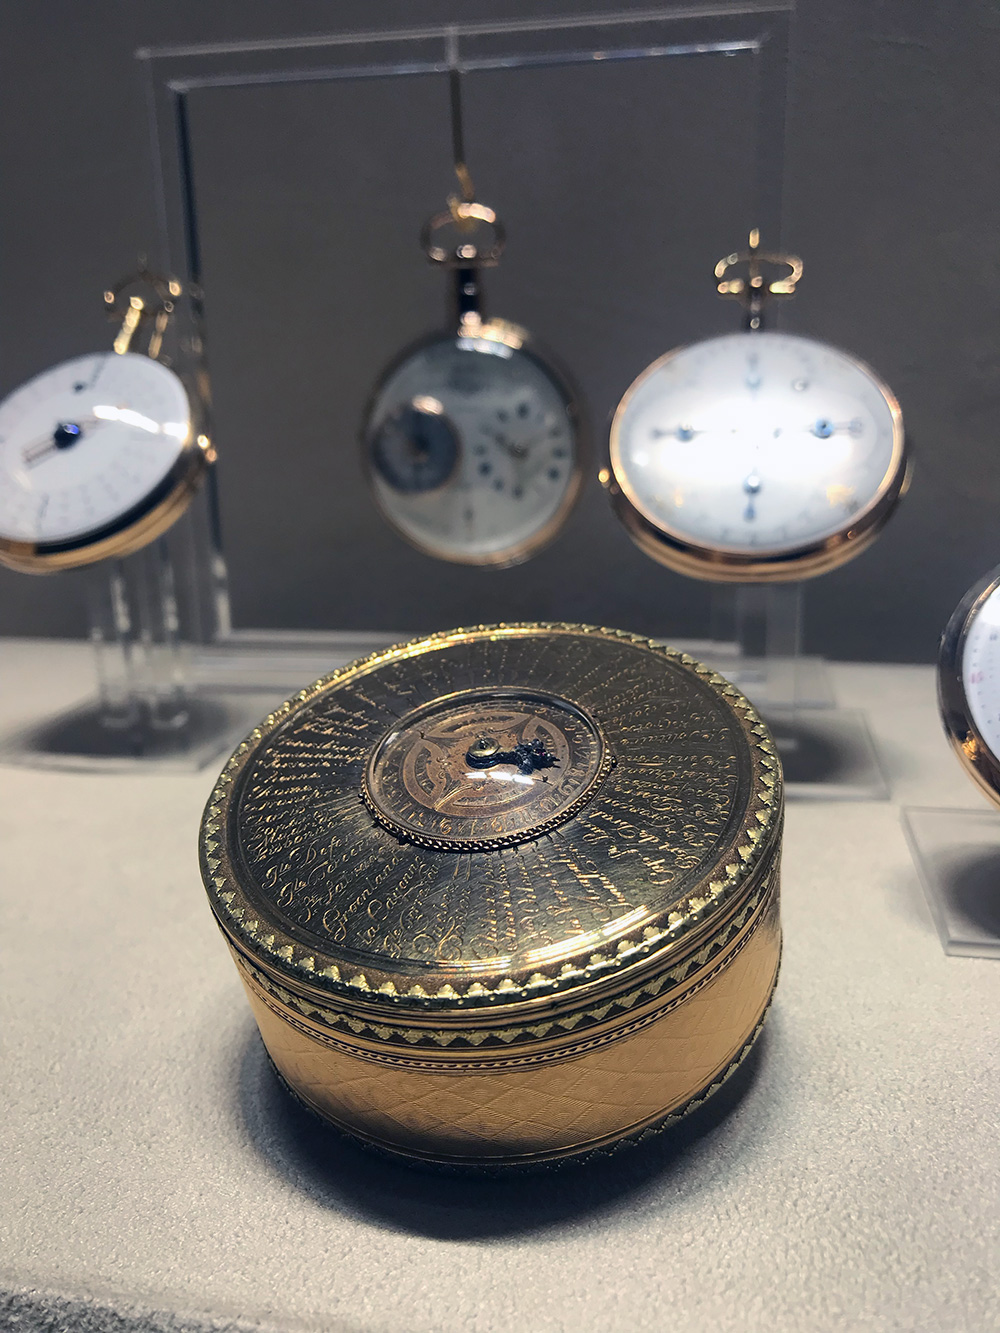 The Candy Box with watch and universal hours indicating local time of 53 cities. Made in Geneva, Switzerland circa 1780